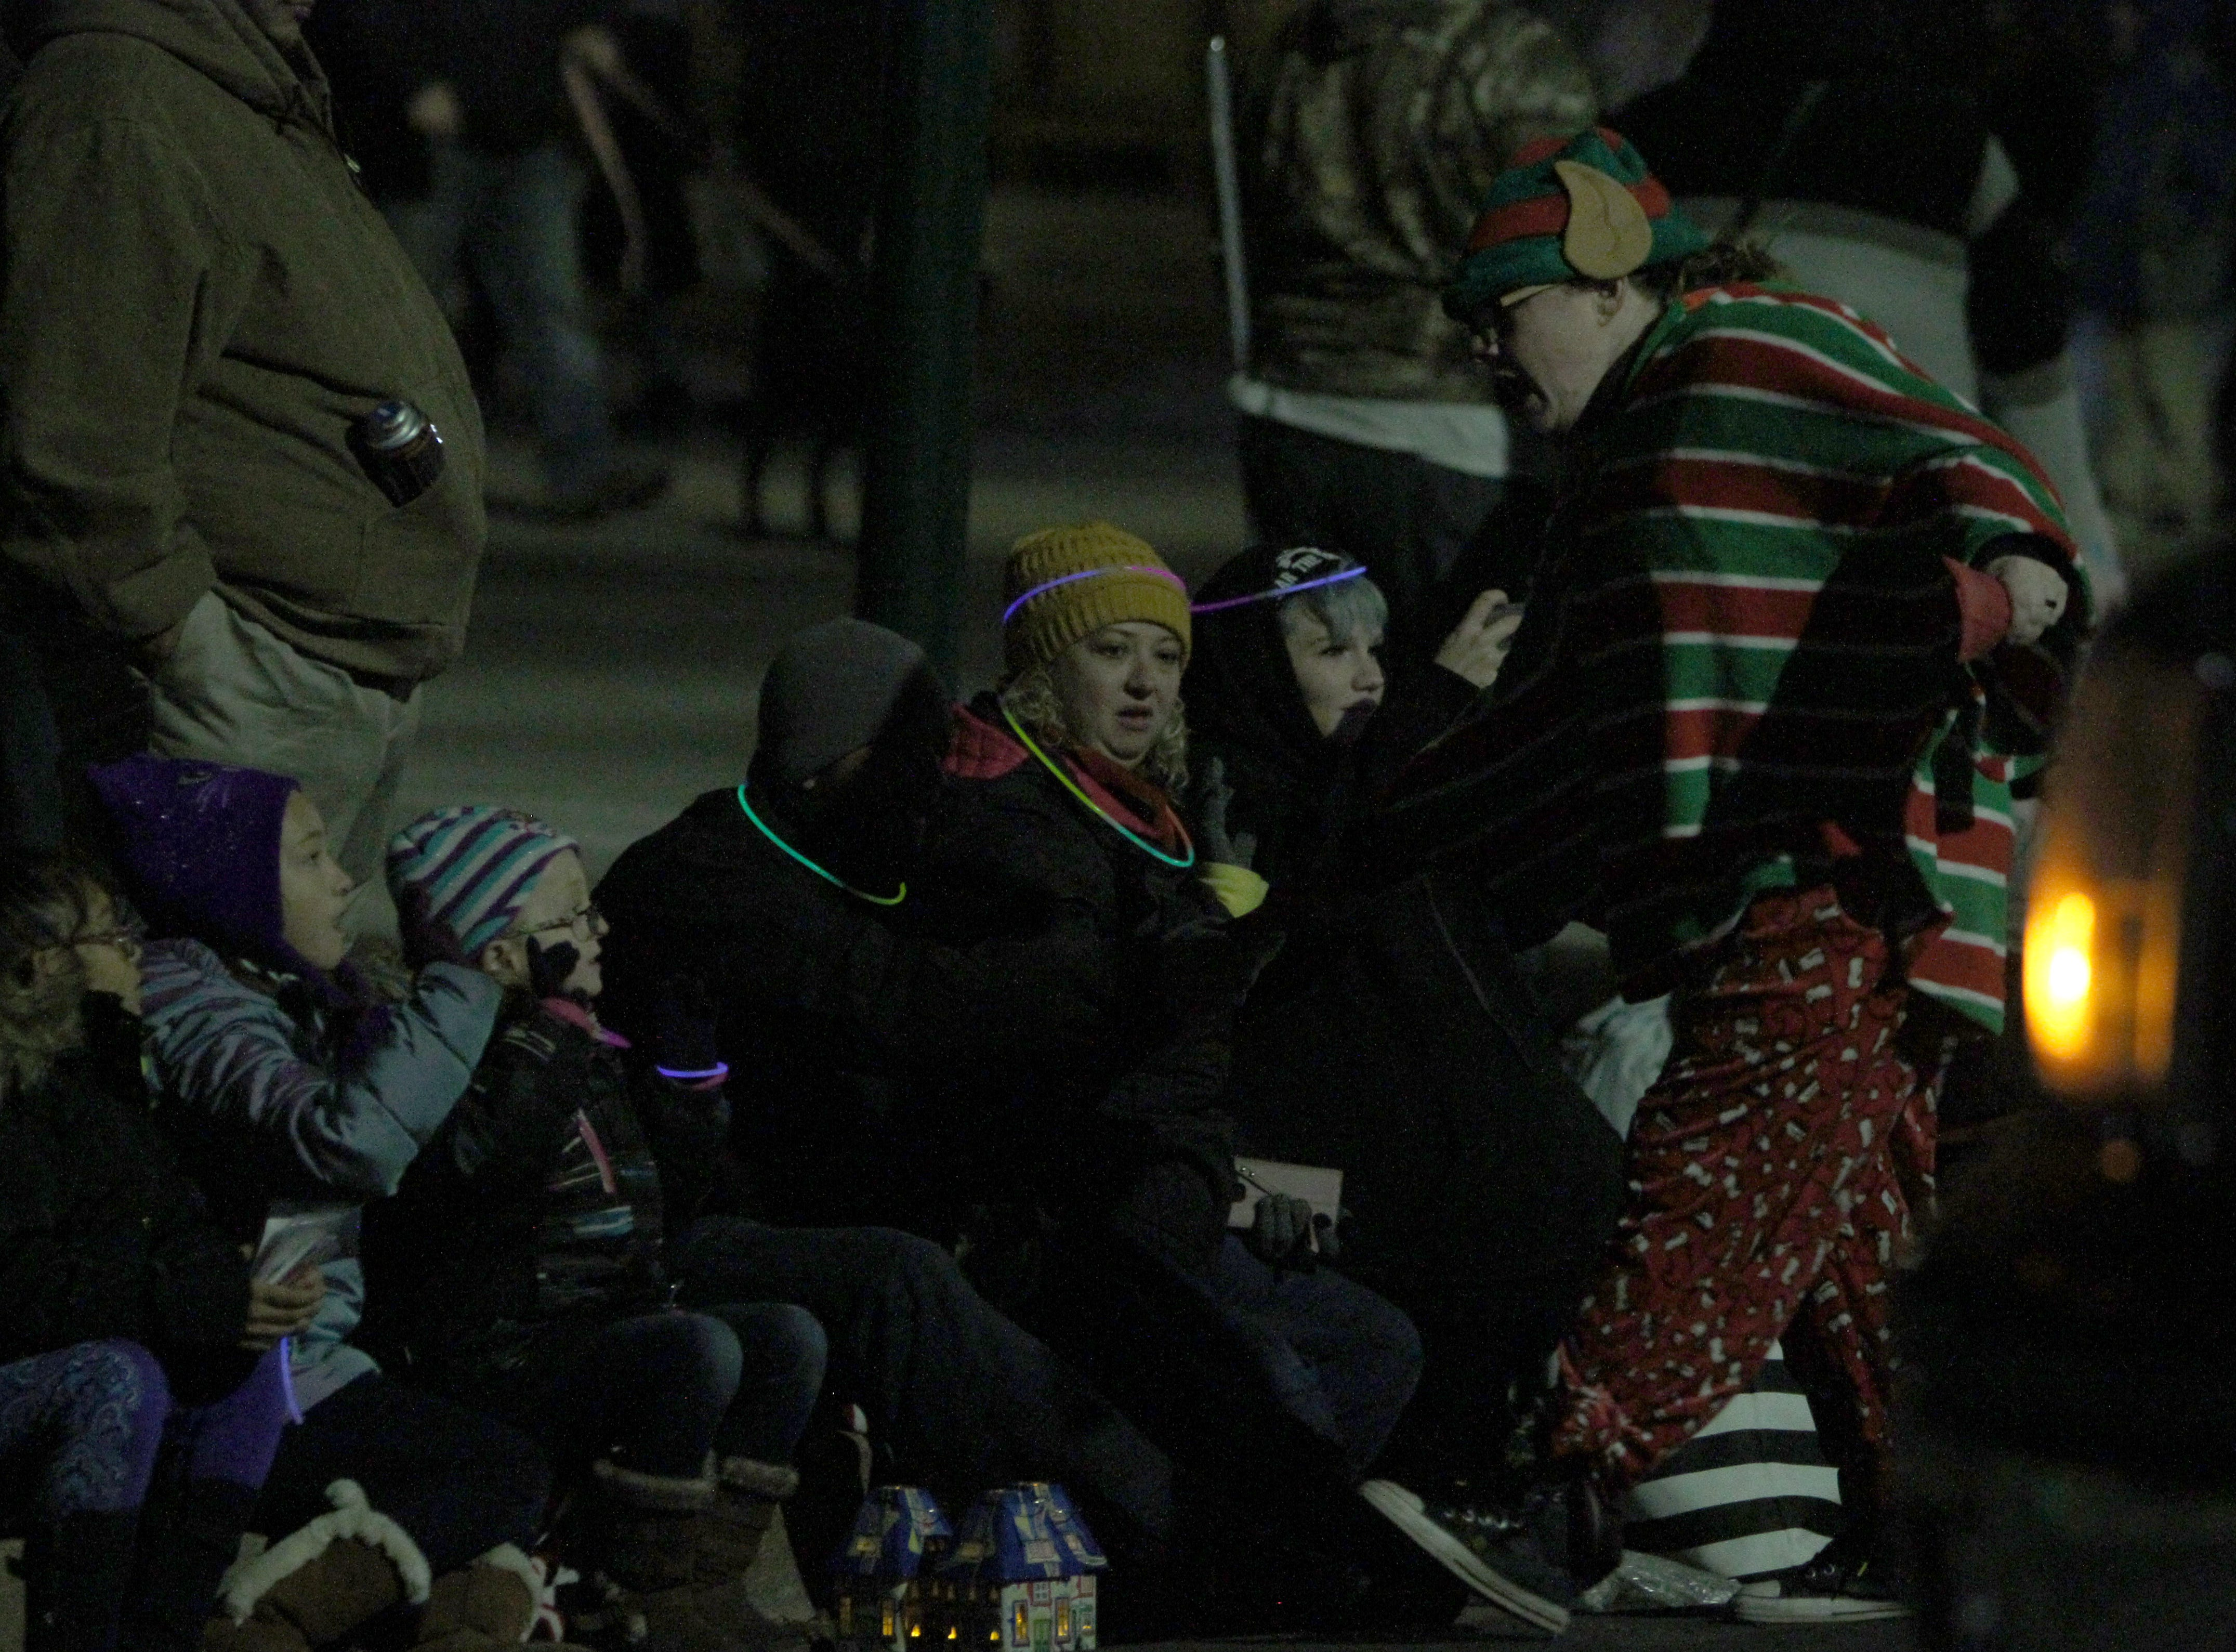 People stay warm as they watch the Wichita Falls City Lights Parade Saturday, Nov. 17, 2018, downtown.